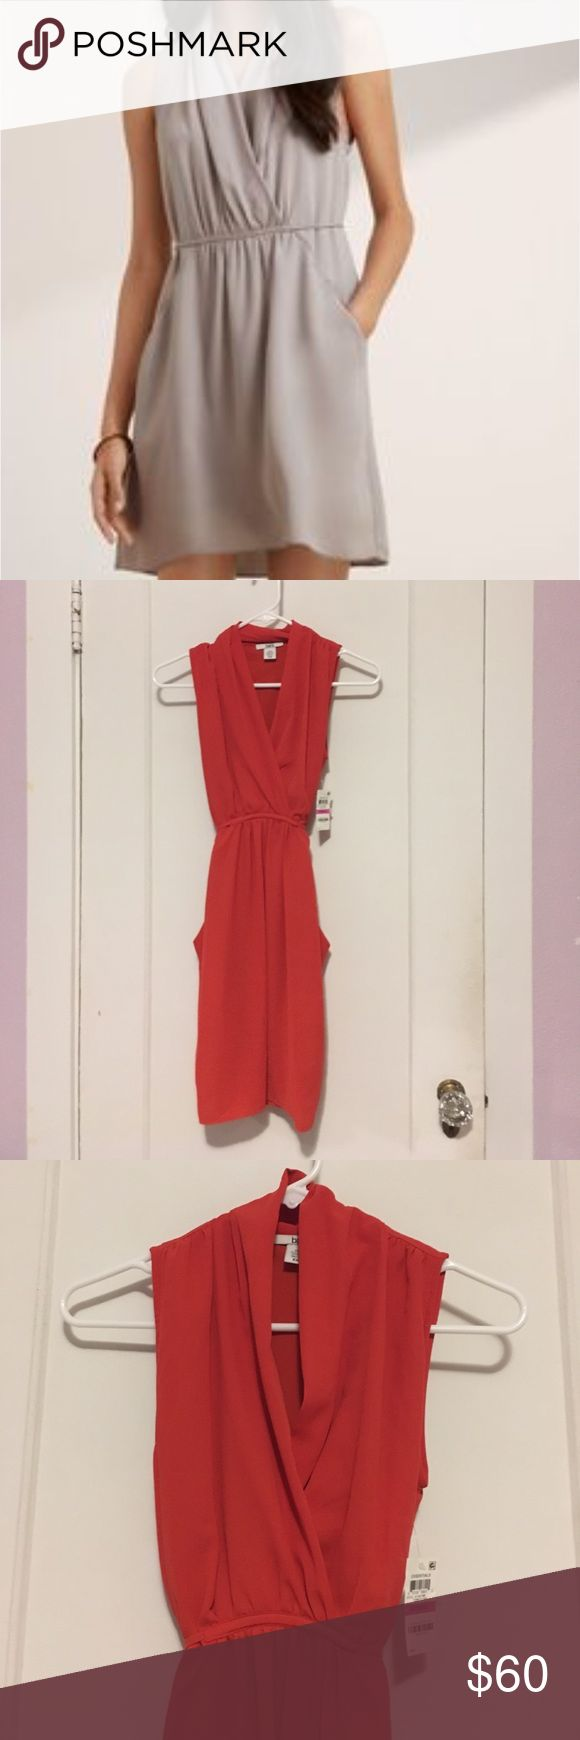 Surplice dress in tomatoe red 🍅 Tagged as aritzia and is exactly like the Sabine dress. This one is 100% polyester and brand is Bar lll. Brand new. Size XXS but fits XS. Last 2 photos are to show color and style on stock photos. Aritzia Dresses